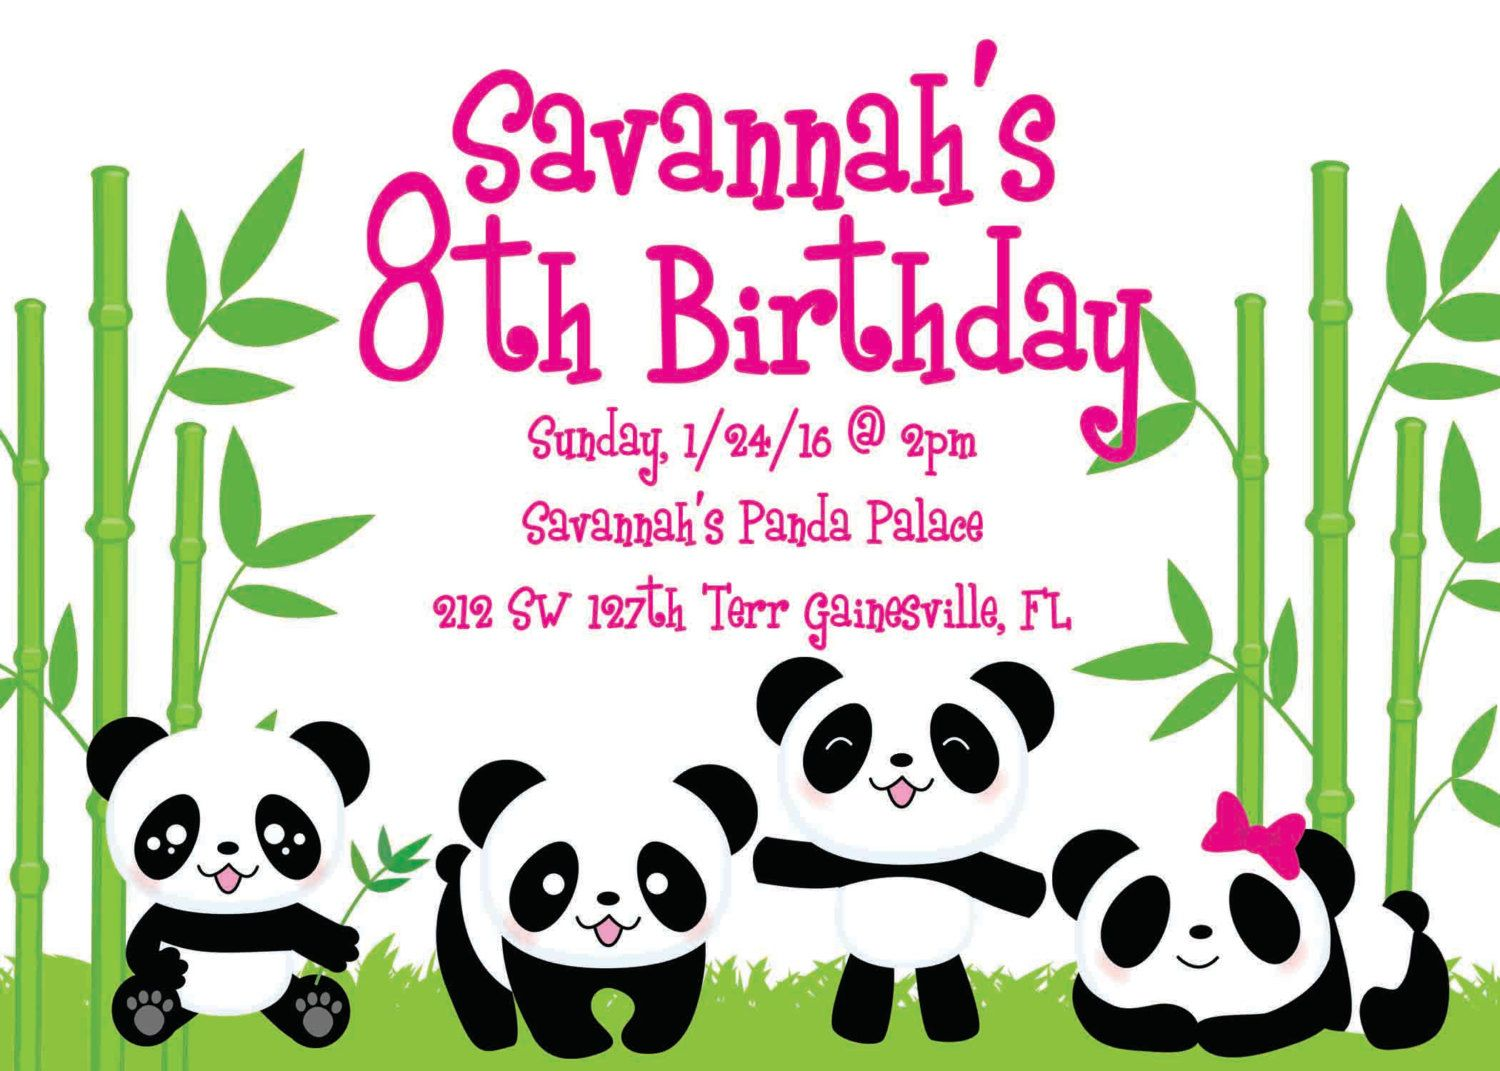 Panda Party Birthday Invitation By GurleyGirlBoutique On Etsy